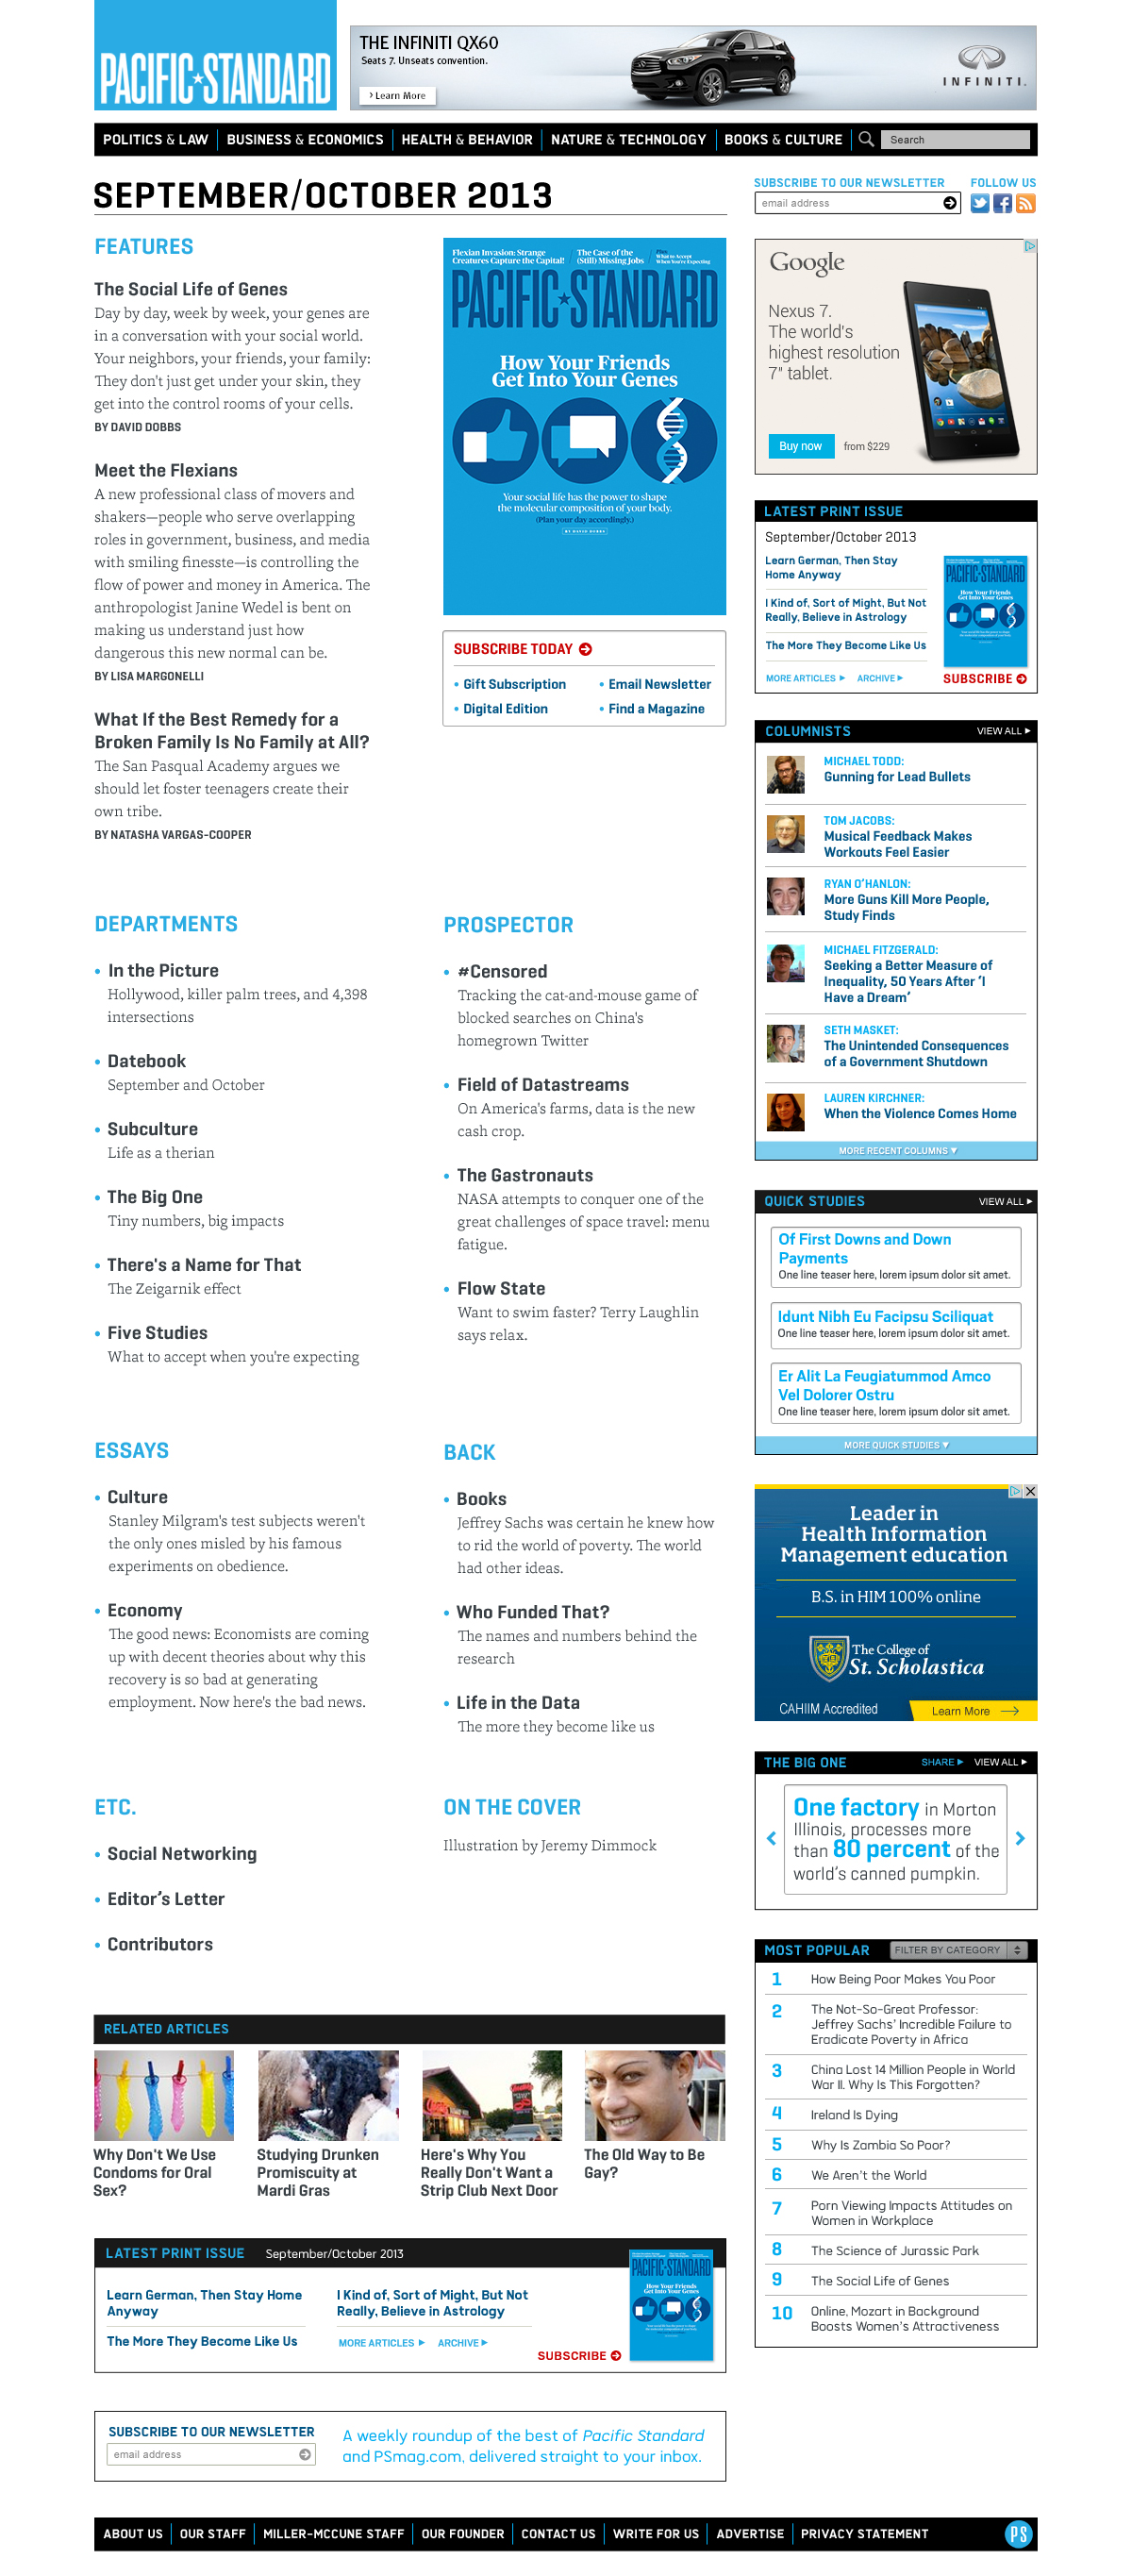 Design Comps Magazine Page Revisions 01.jpg